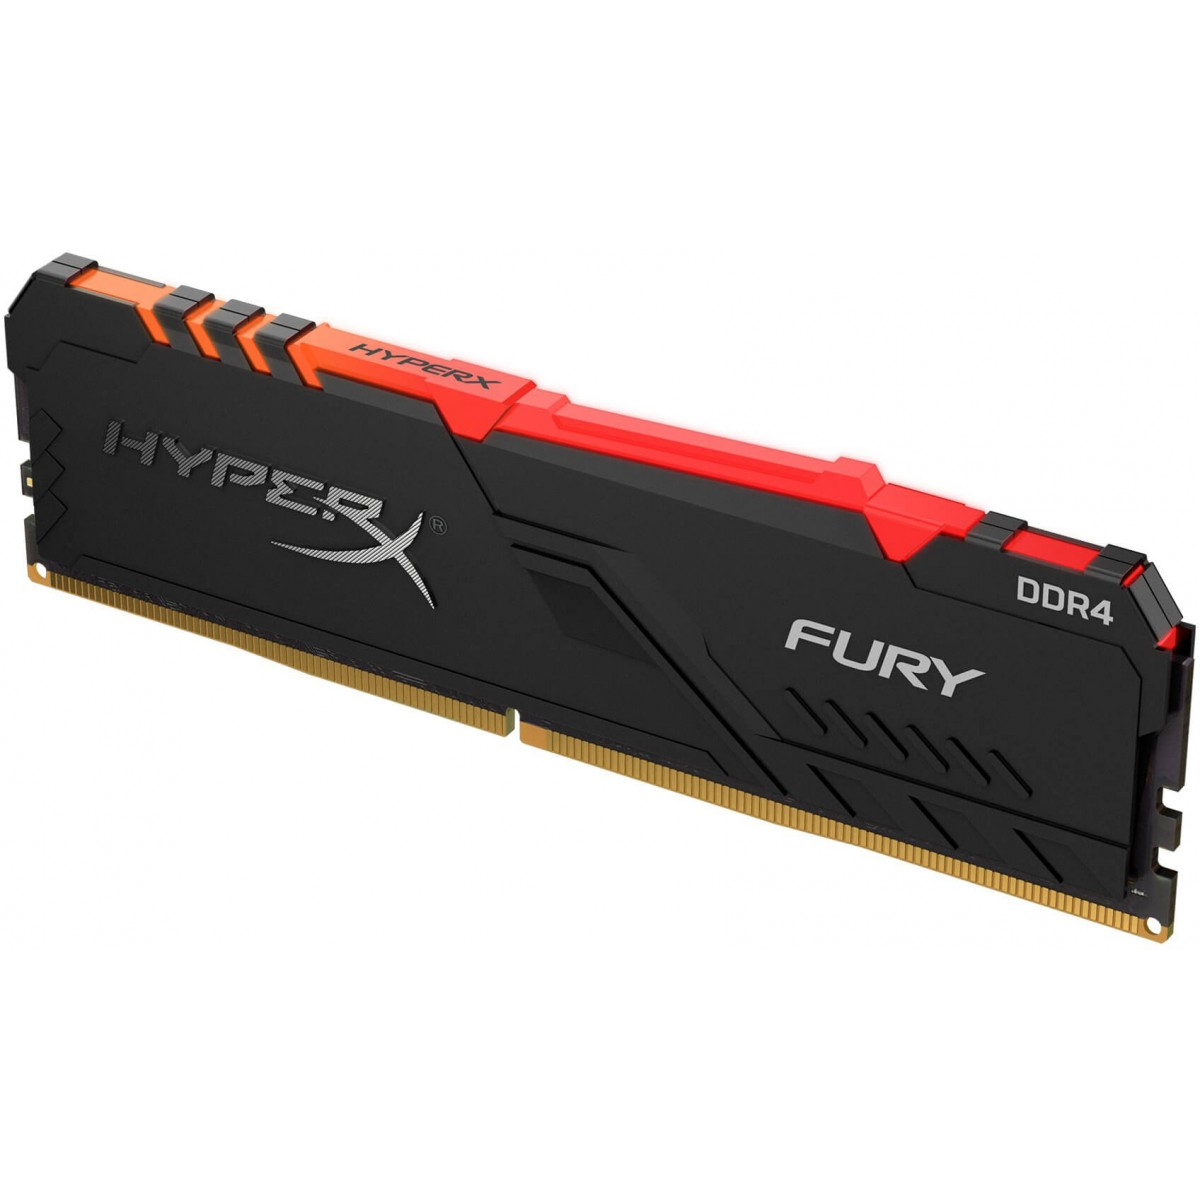 Memória DDR4 Kingston HyperX Fury RGB, 8GB 3000MHz, Black, HX430C15FB3A/8